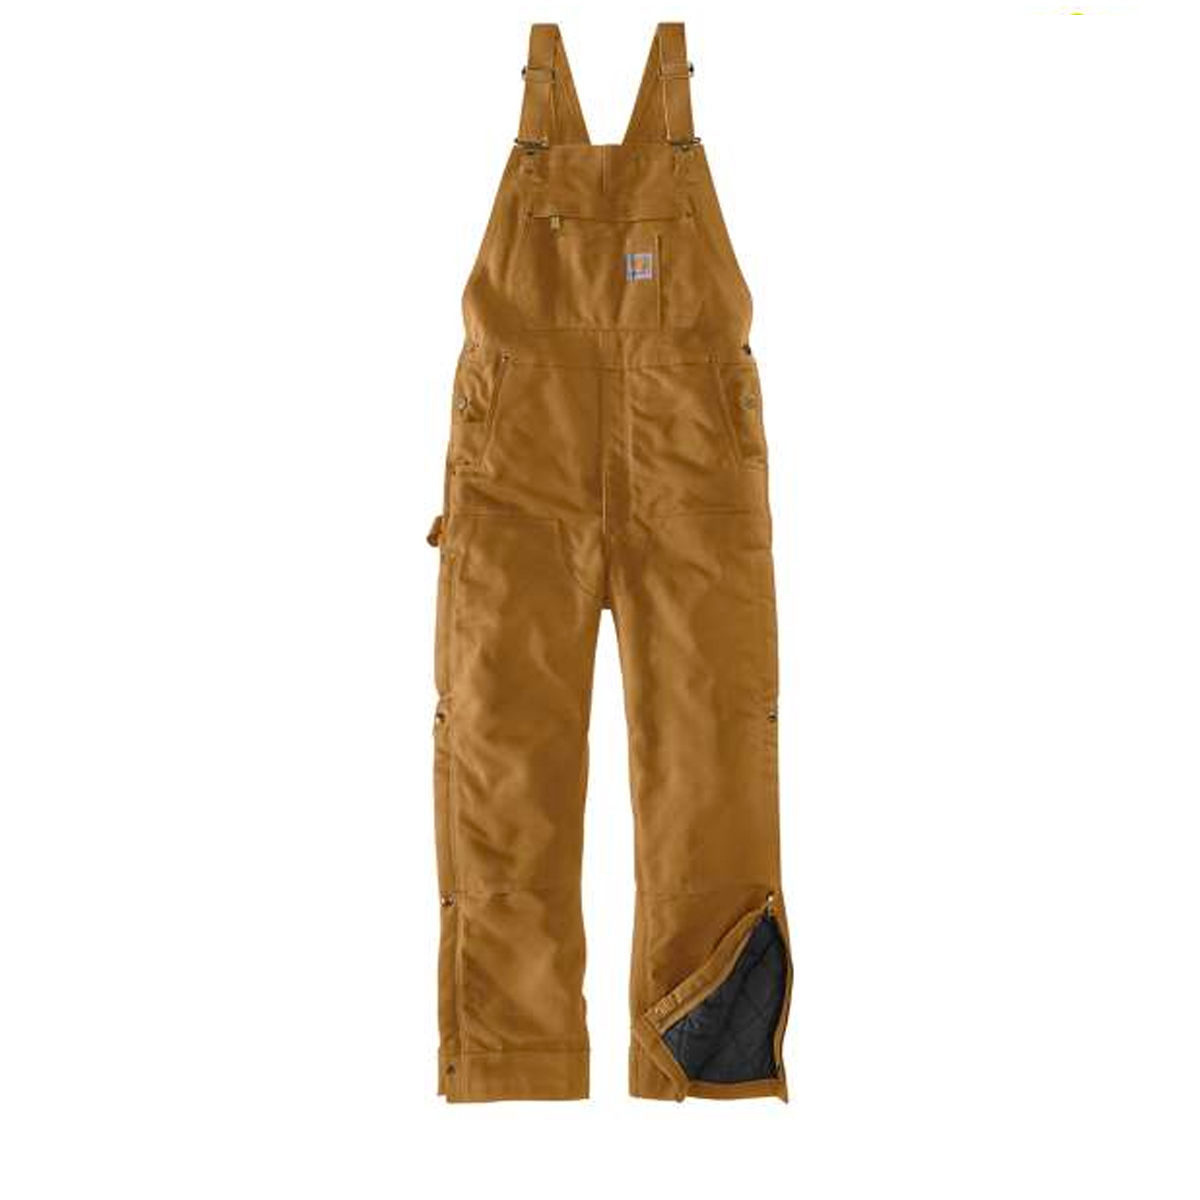 Men's Big Loose Fit Firm Duck Insulated Bib Overall, Wheat, swatch